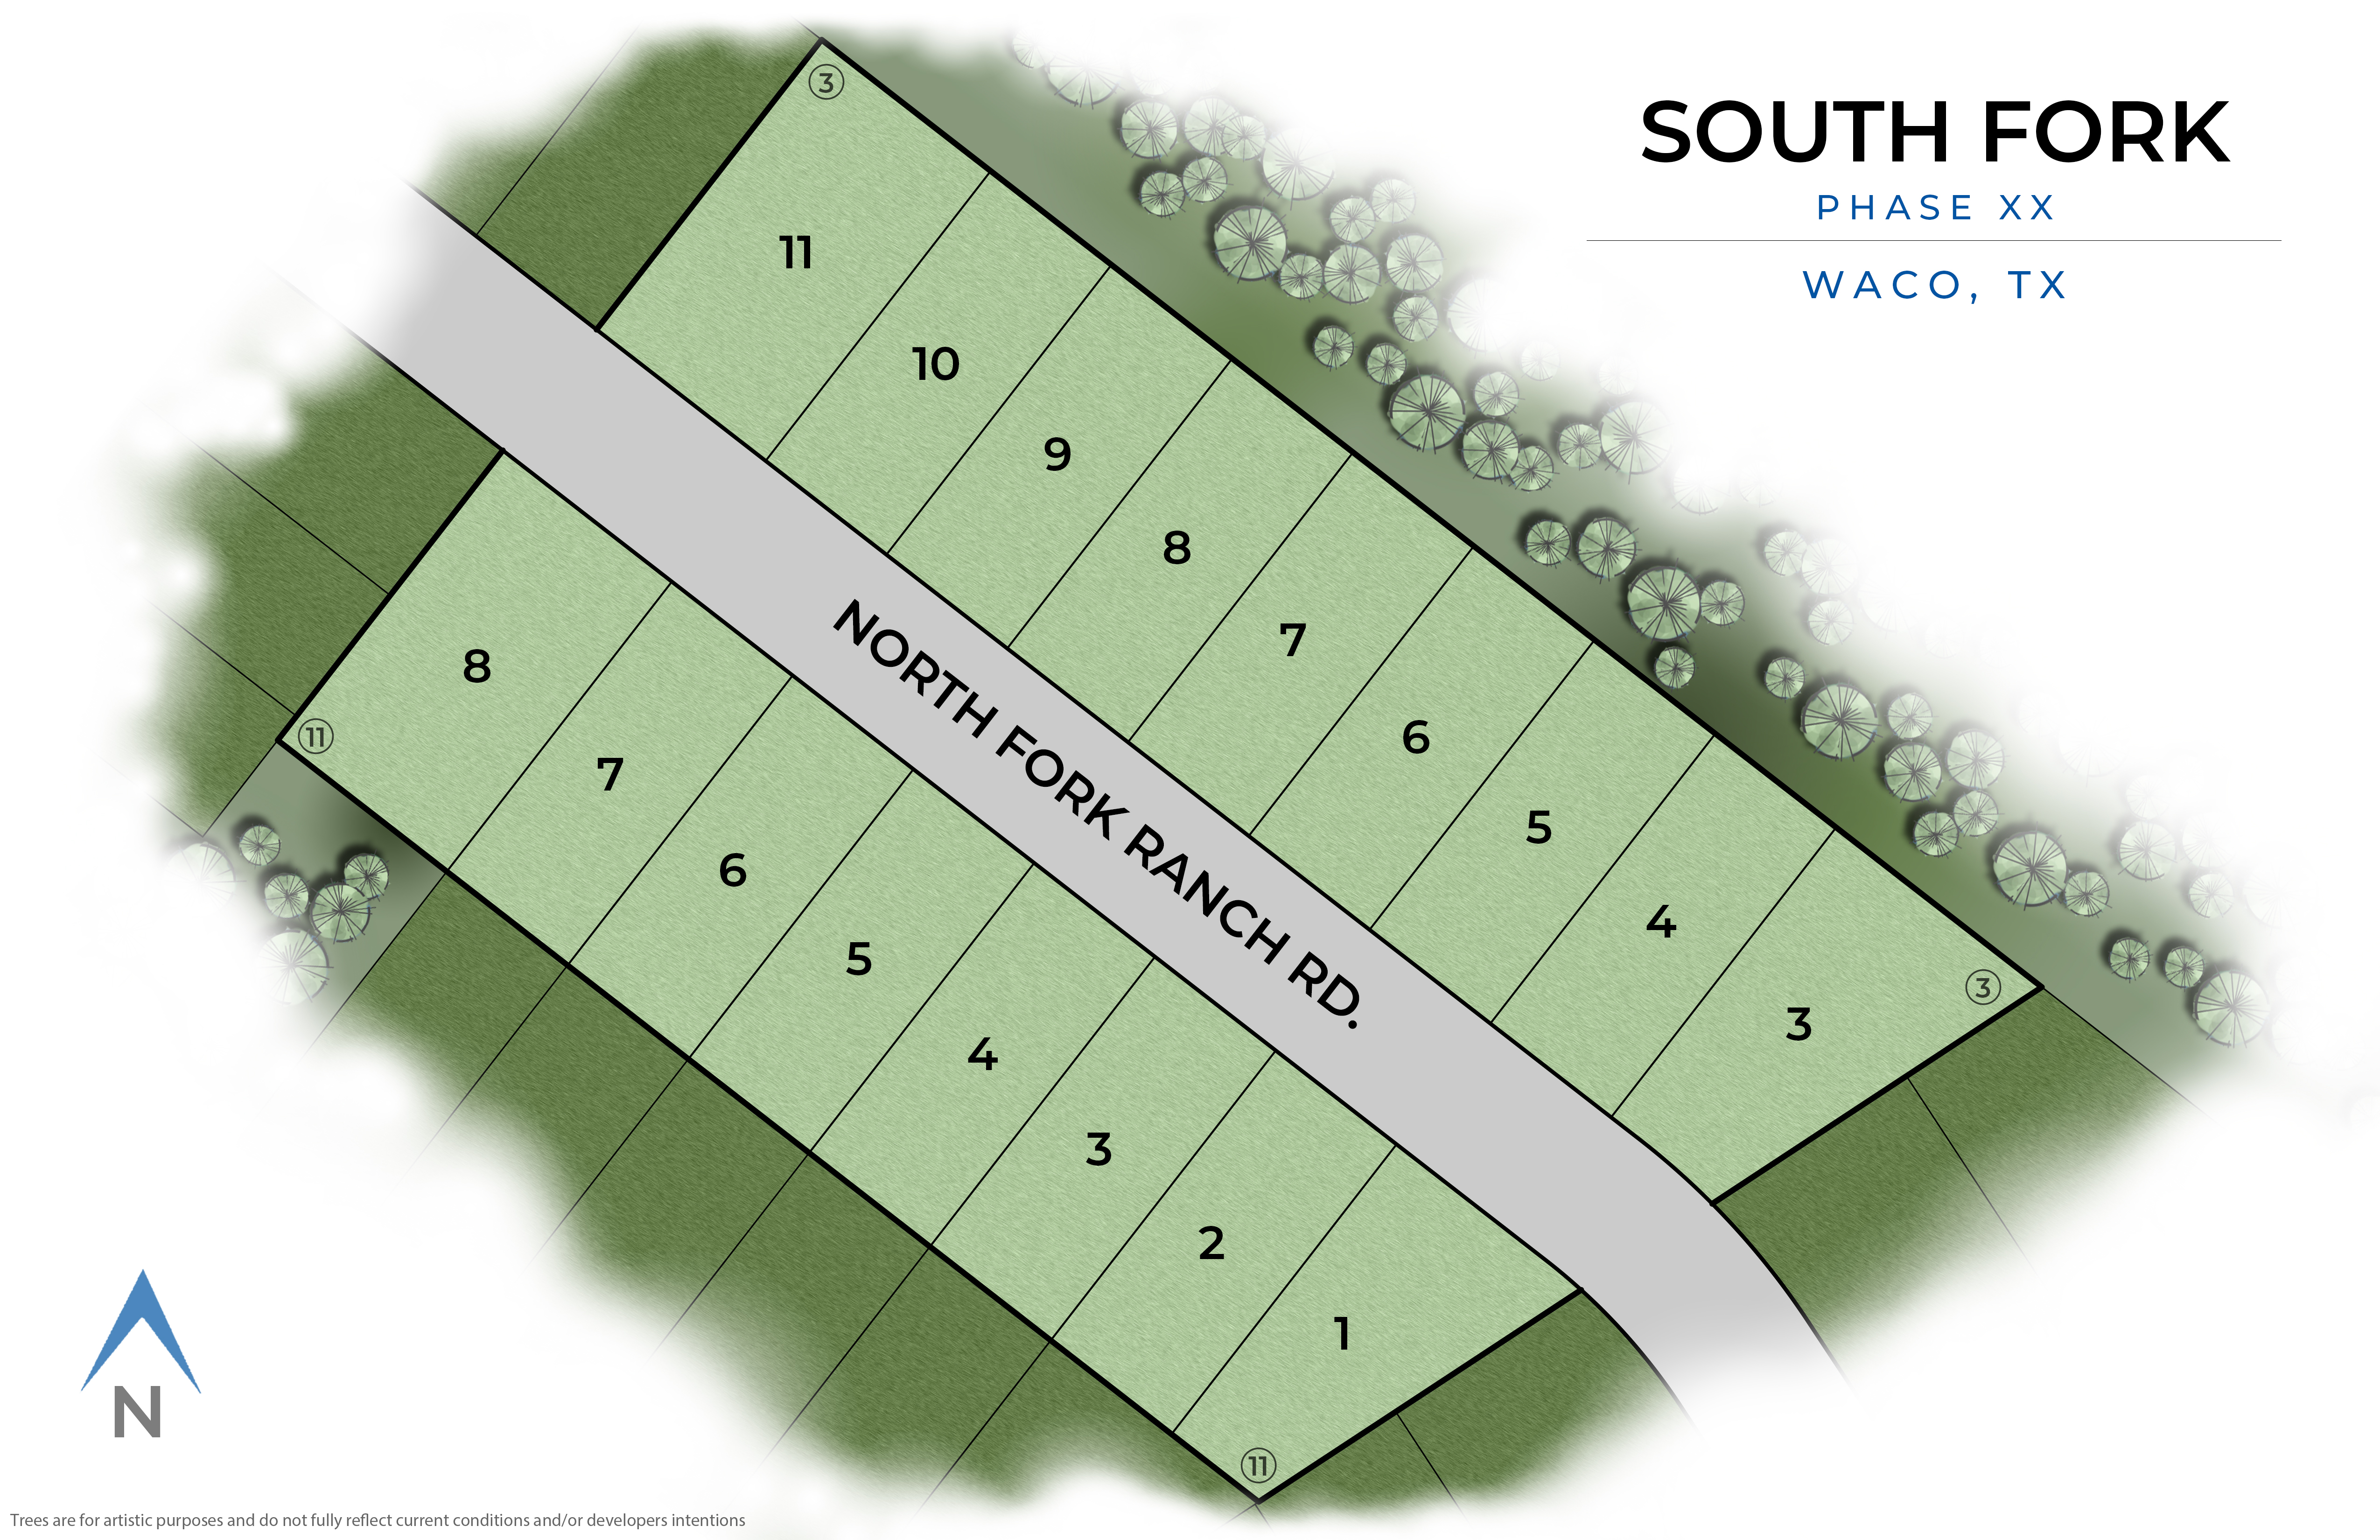 Waco, TX South Fork New Homes from Stylecraft Builders